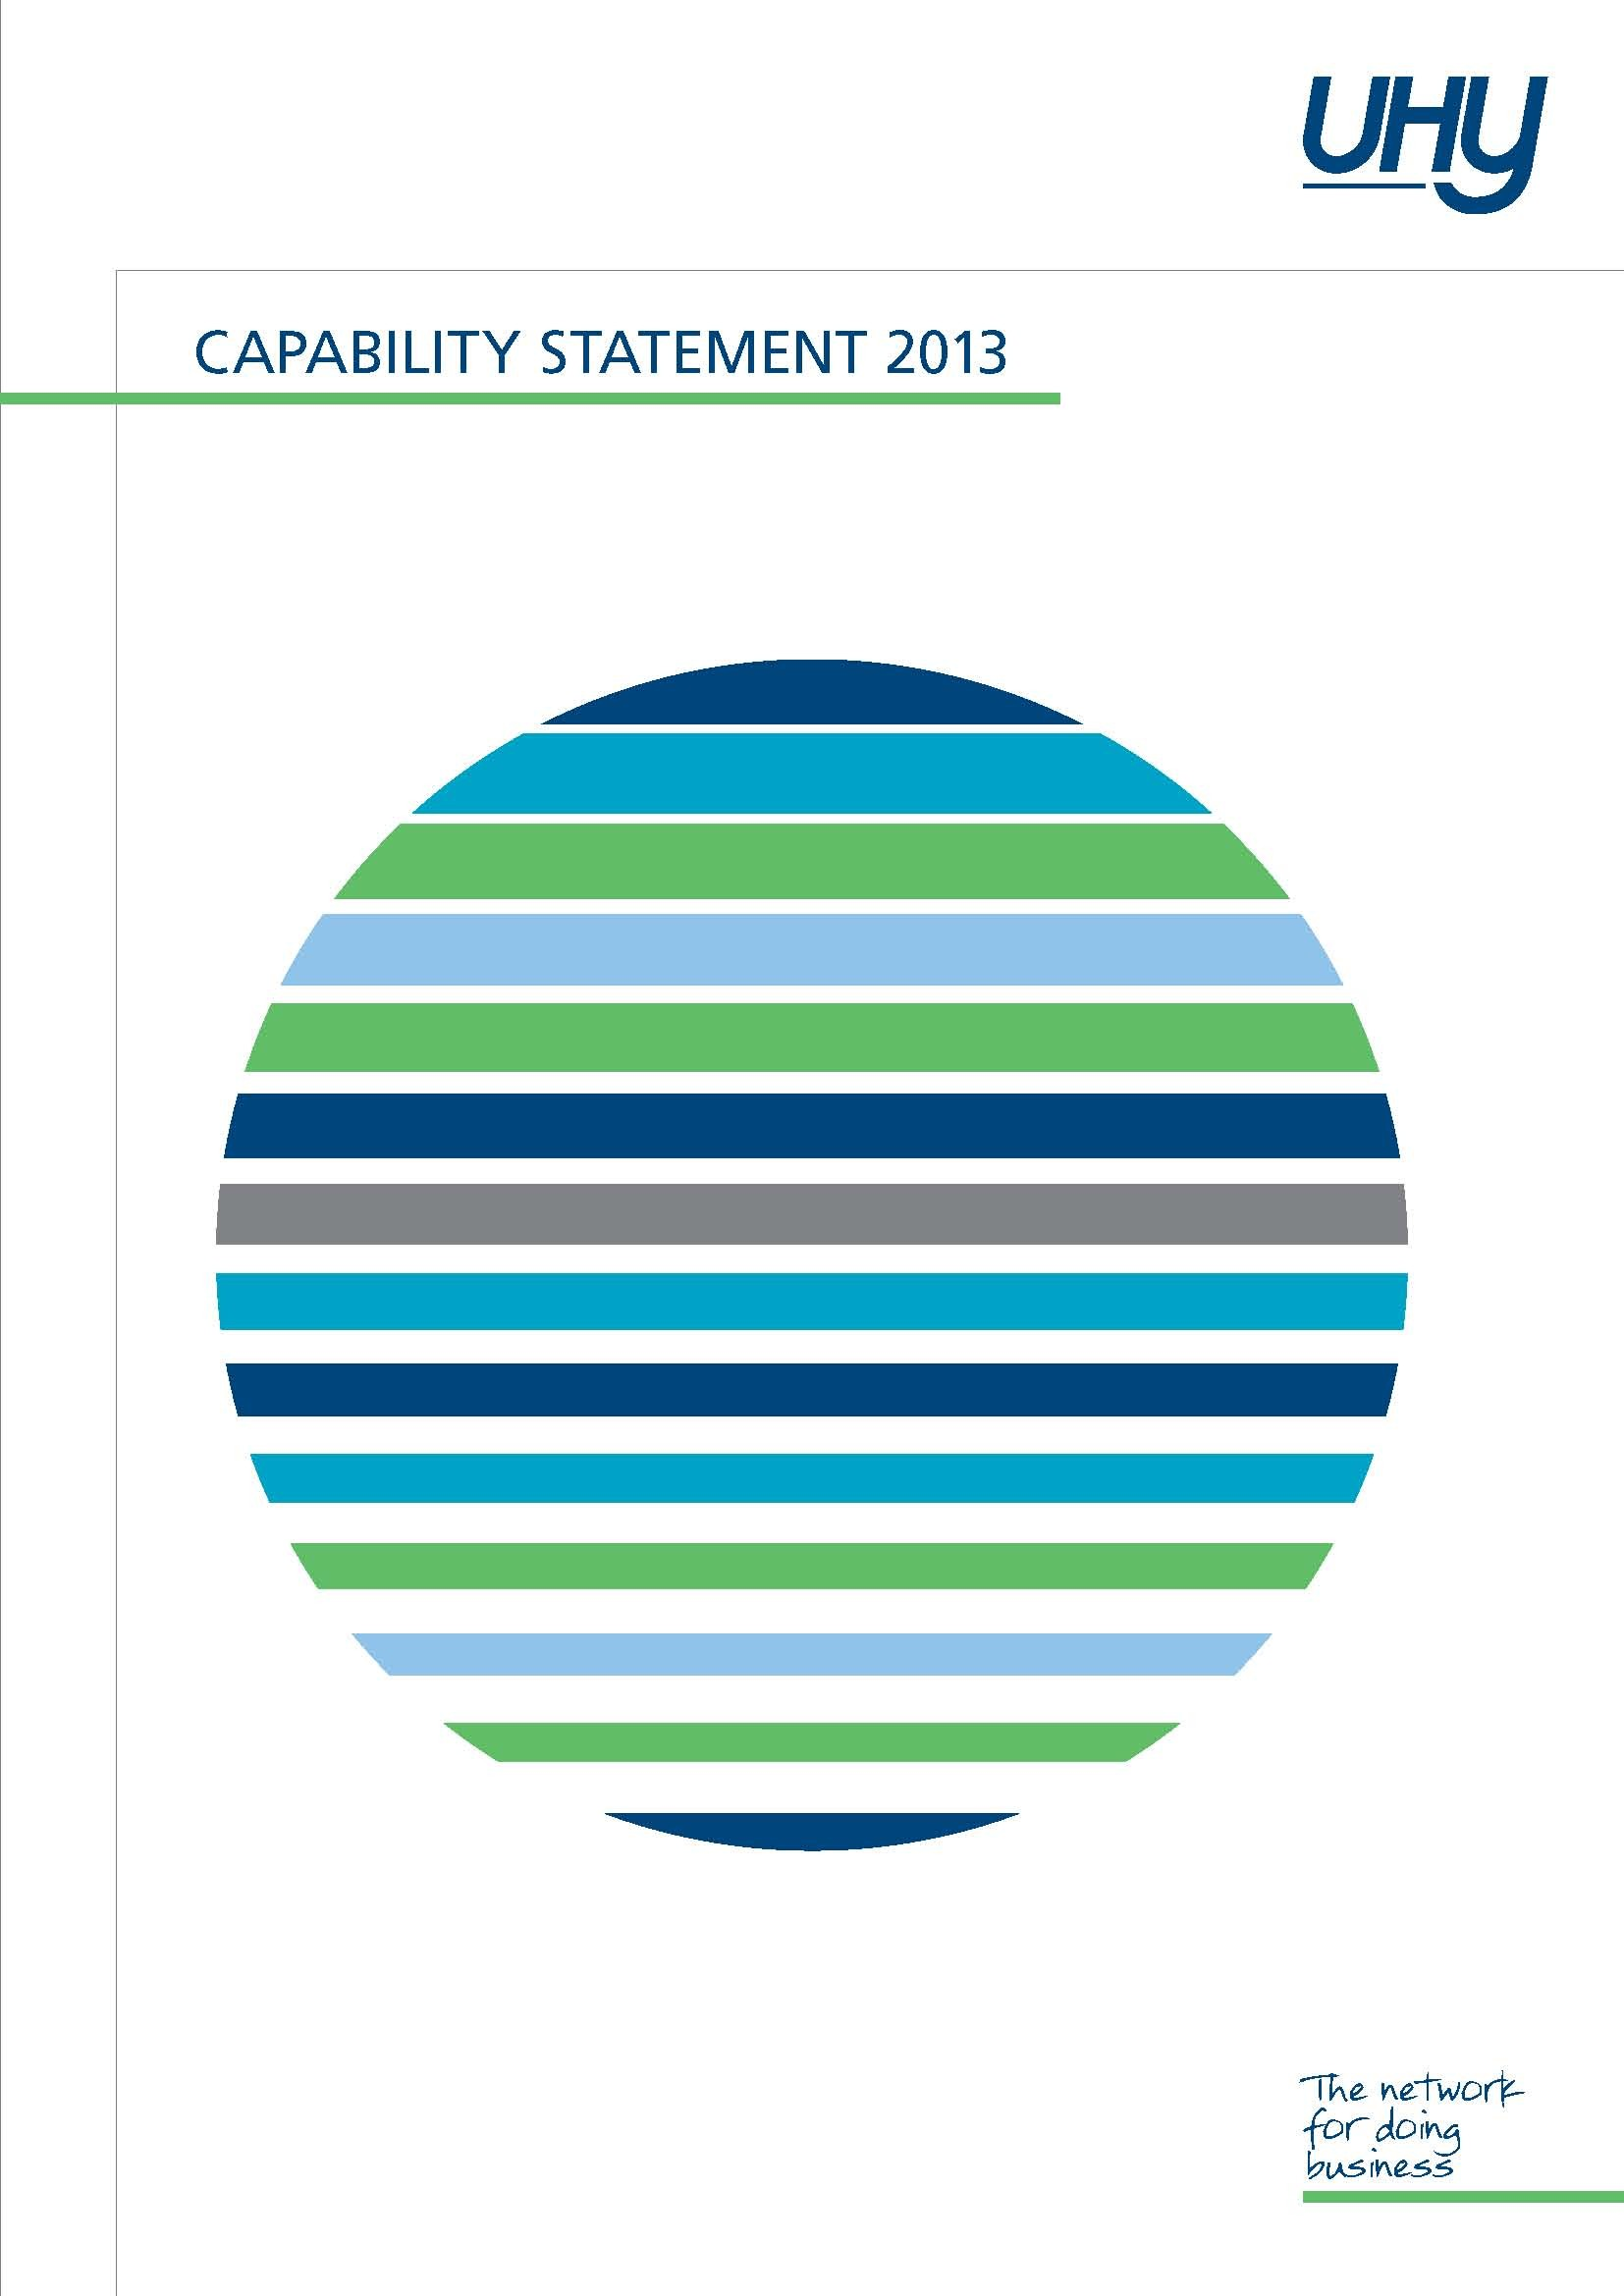 UHY Capability Statement 2013_p1